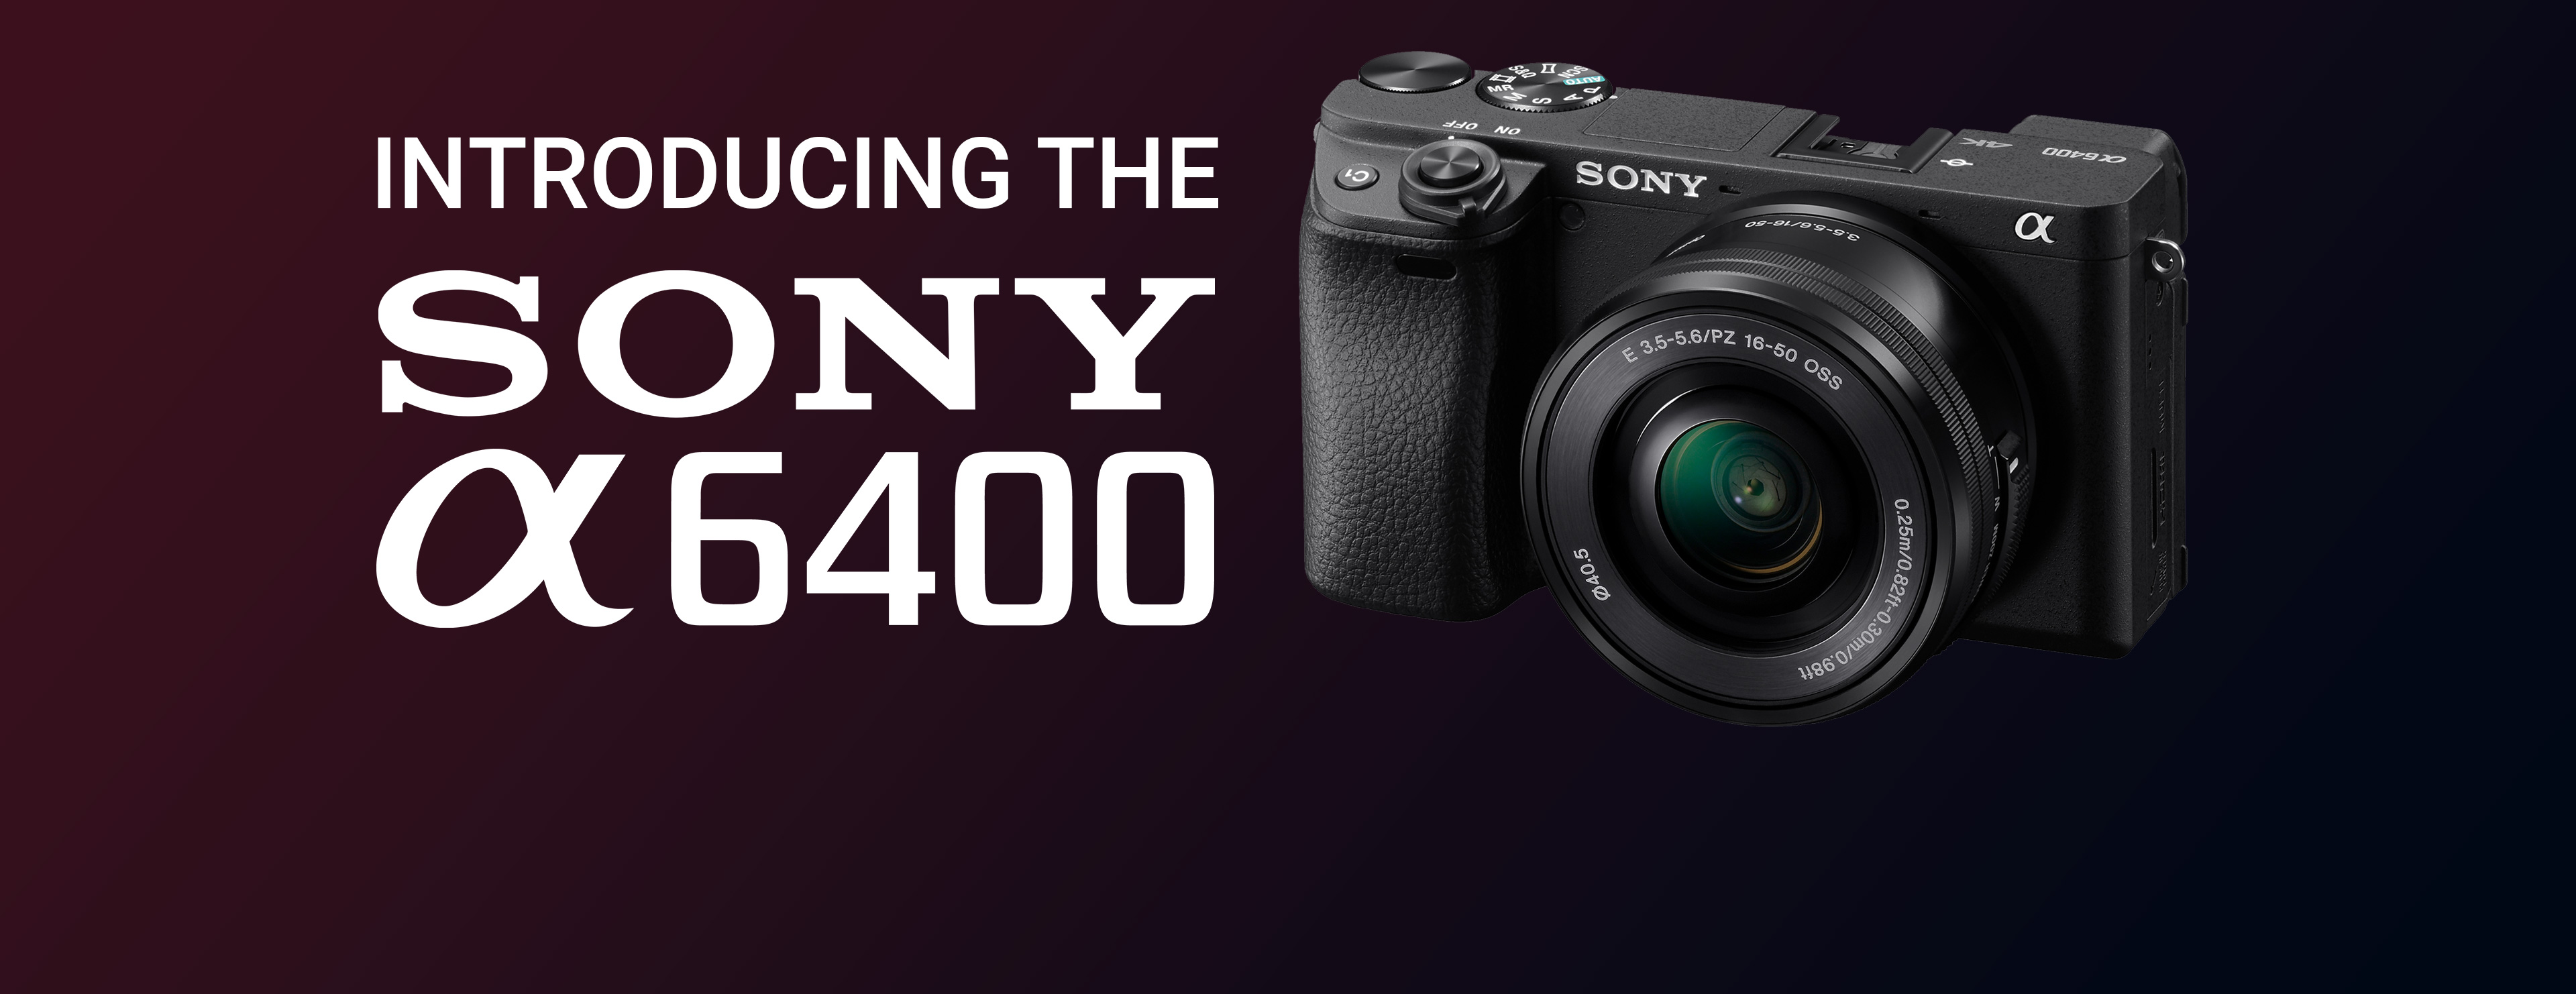 Sony a6400 Announcement